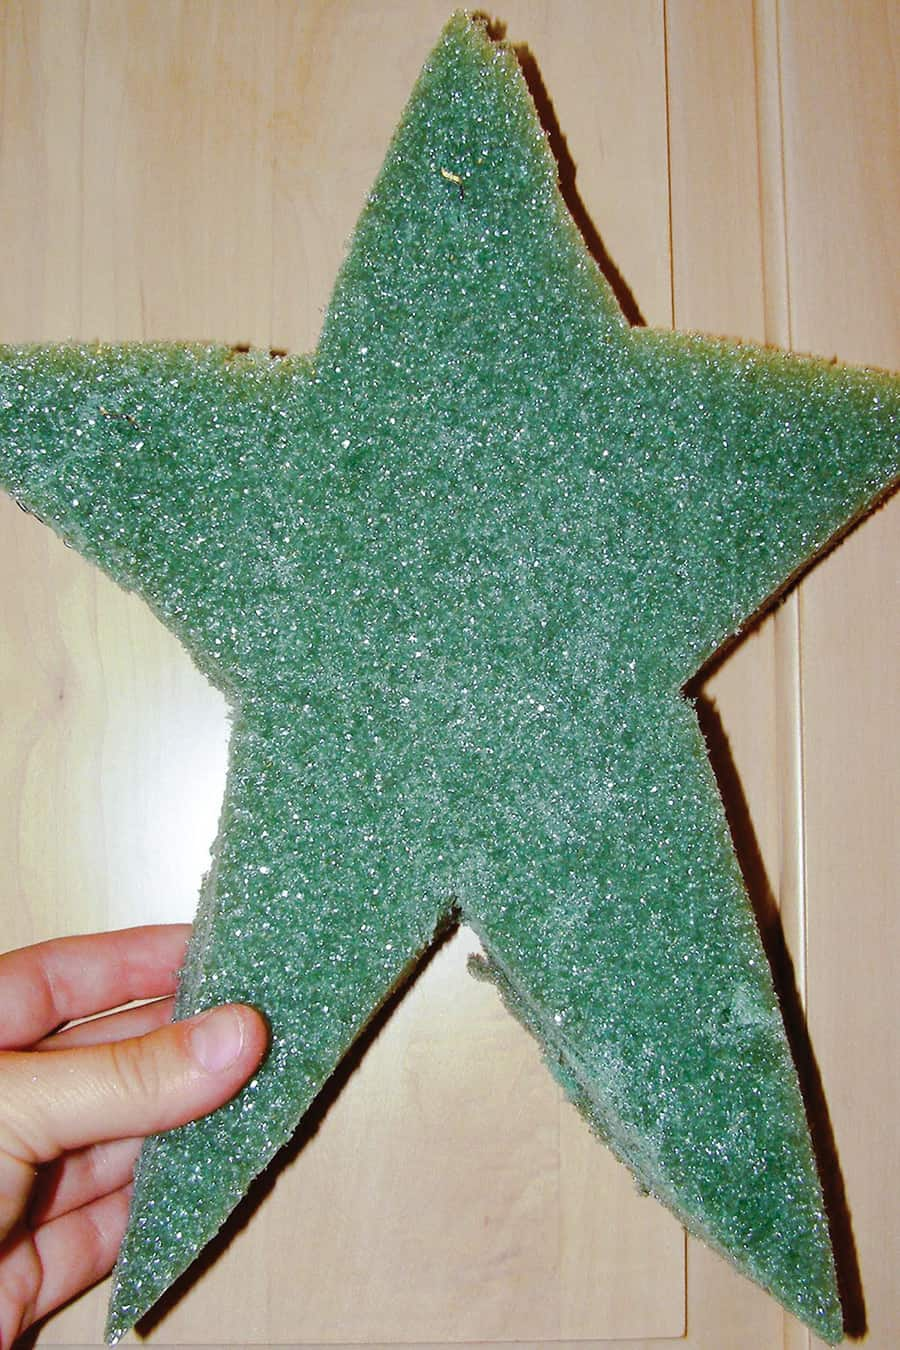 star cut out of floral foam